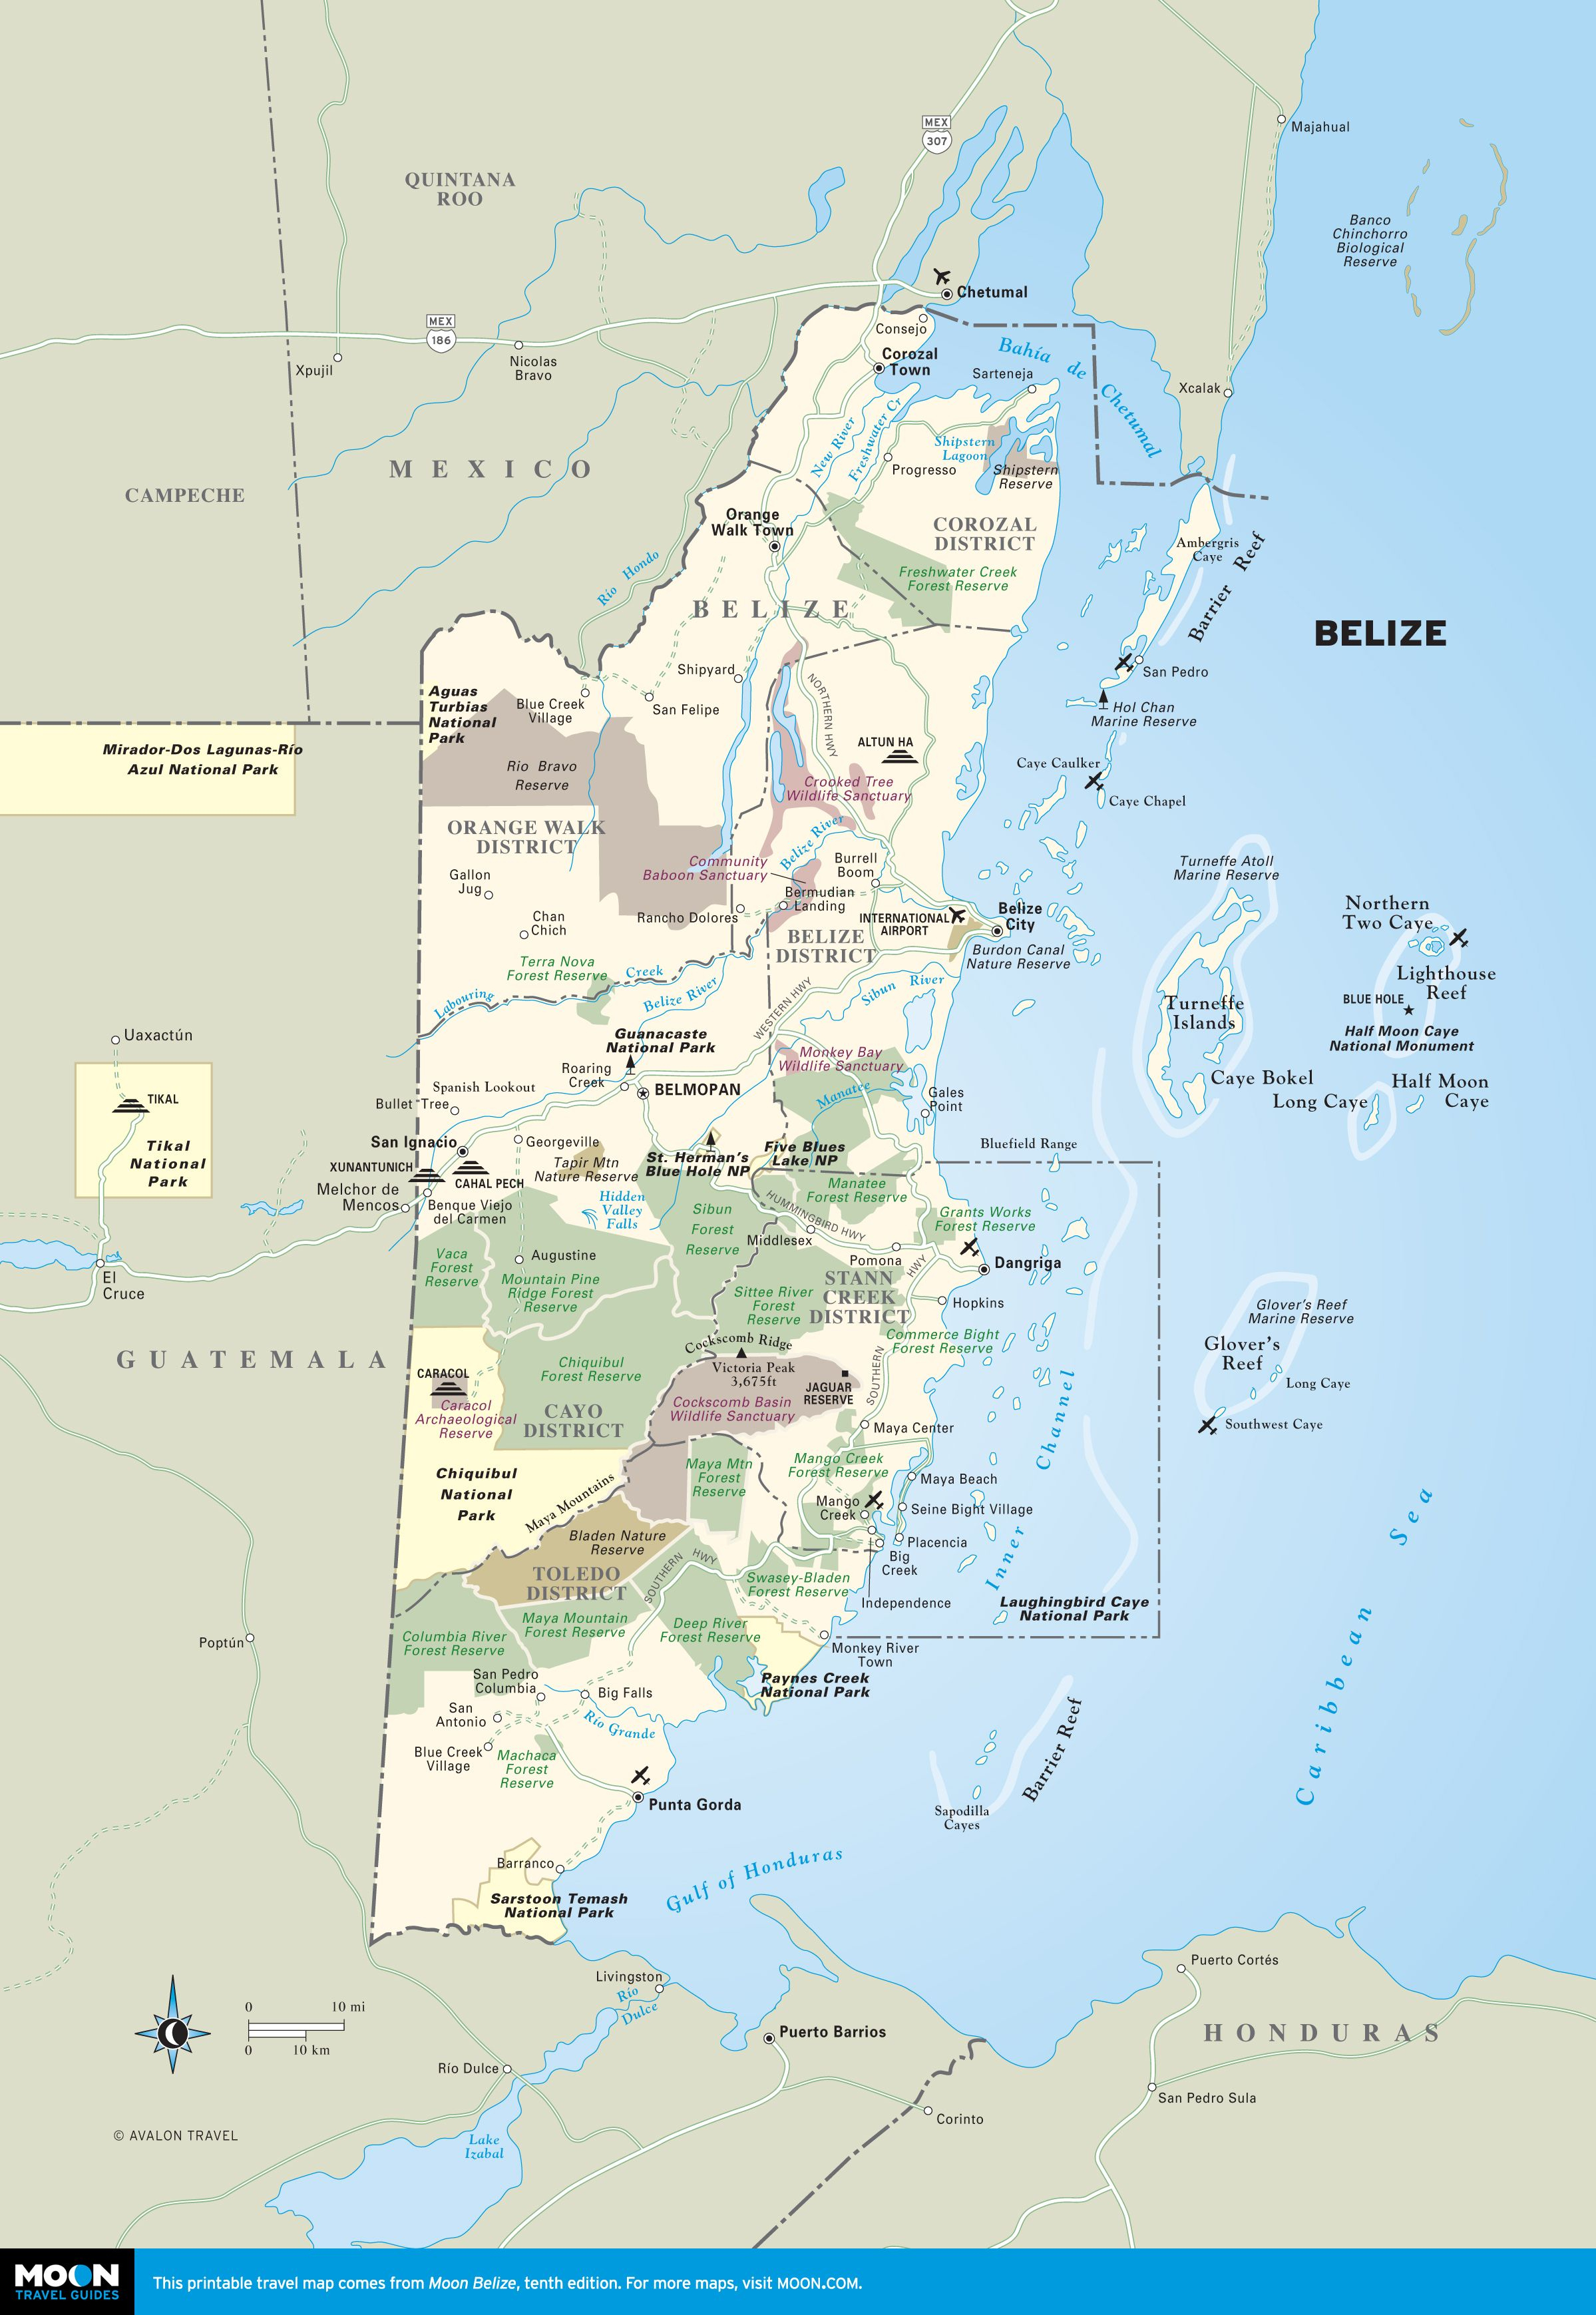 Printable Travel Maps Of Belize | Getting Ready For Retirement | Map - Printable Map Of Belize